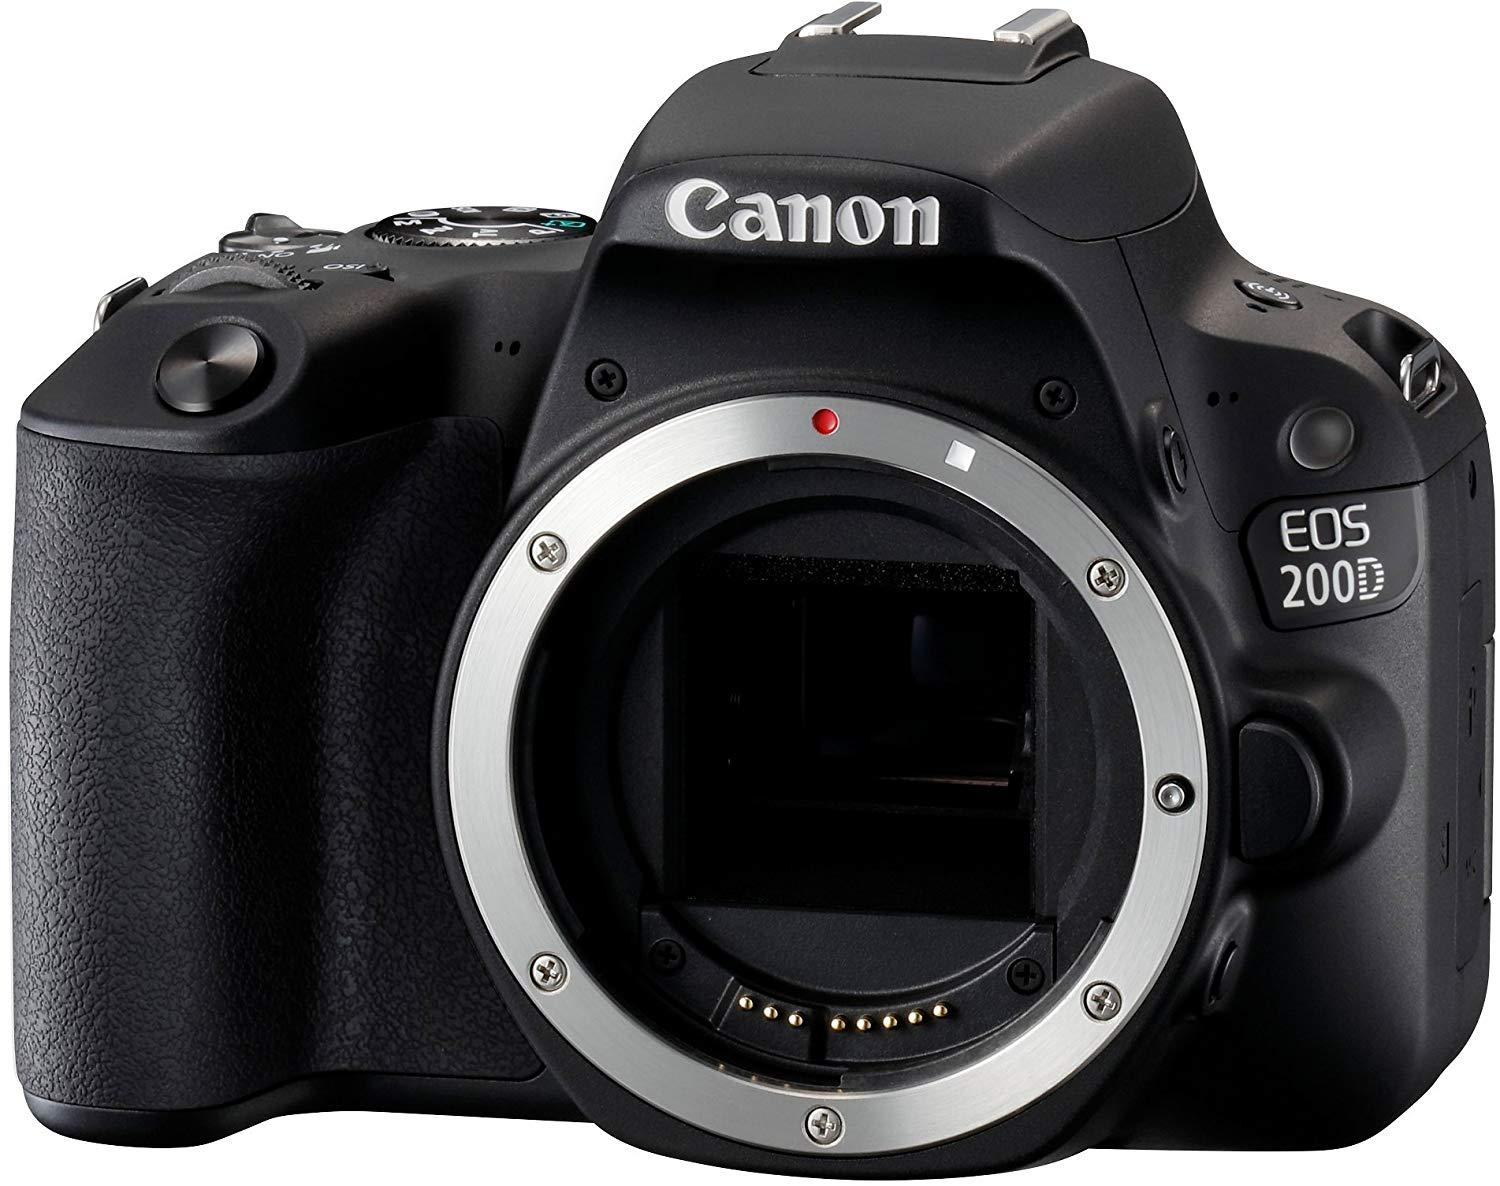 Canon Philippines Dslr Cameras For Sale Prices Reviews Eos 70d Body 200d Digital Slr Camera Only Black